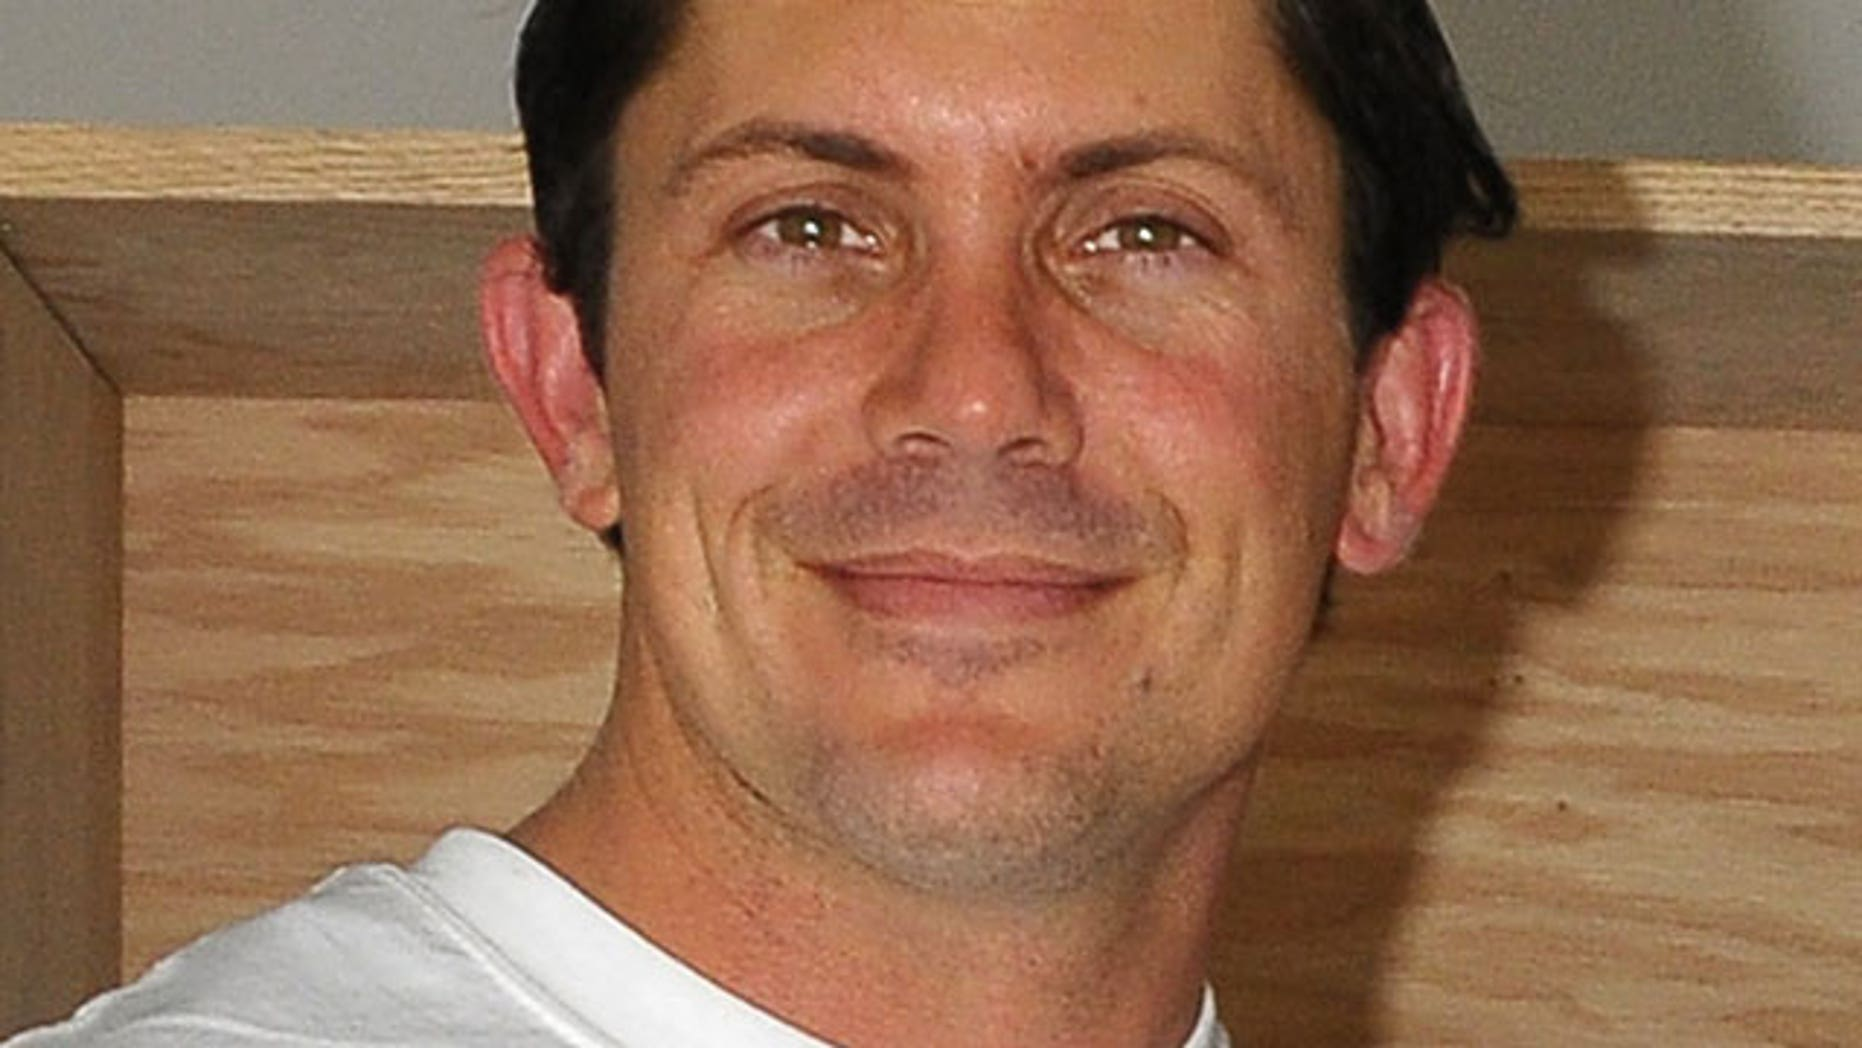 The body of Julien Hug, 35, was found off Highway 74 near Pinyon Pines at around 11 a.m. local time, his father told the AP.